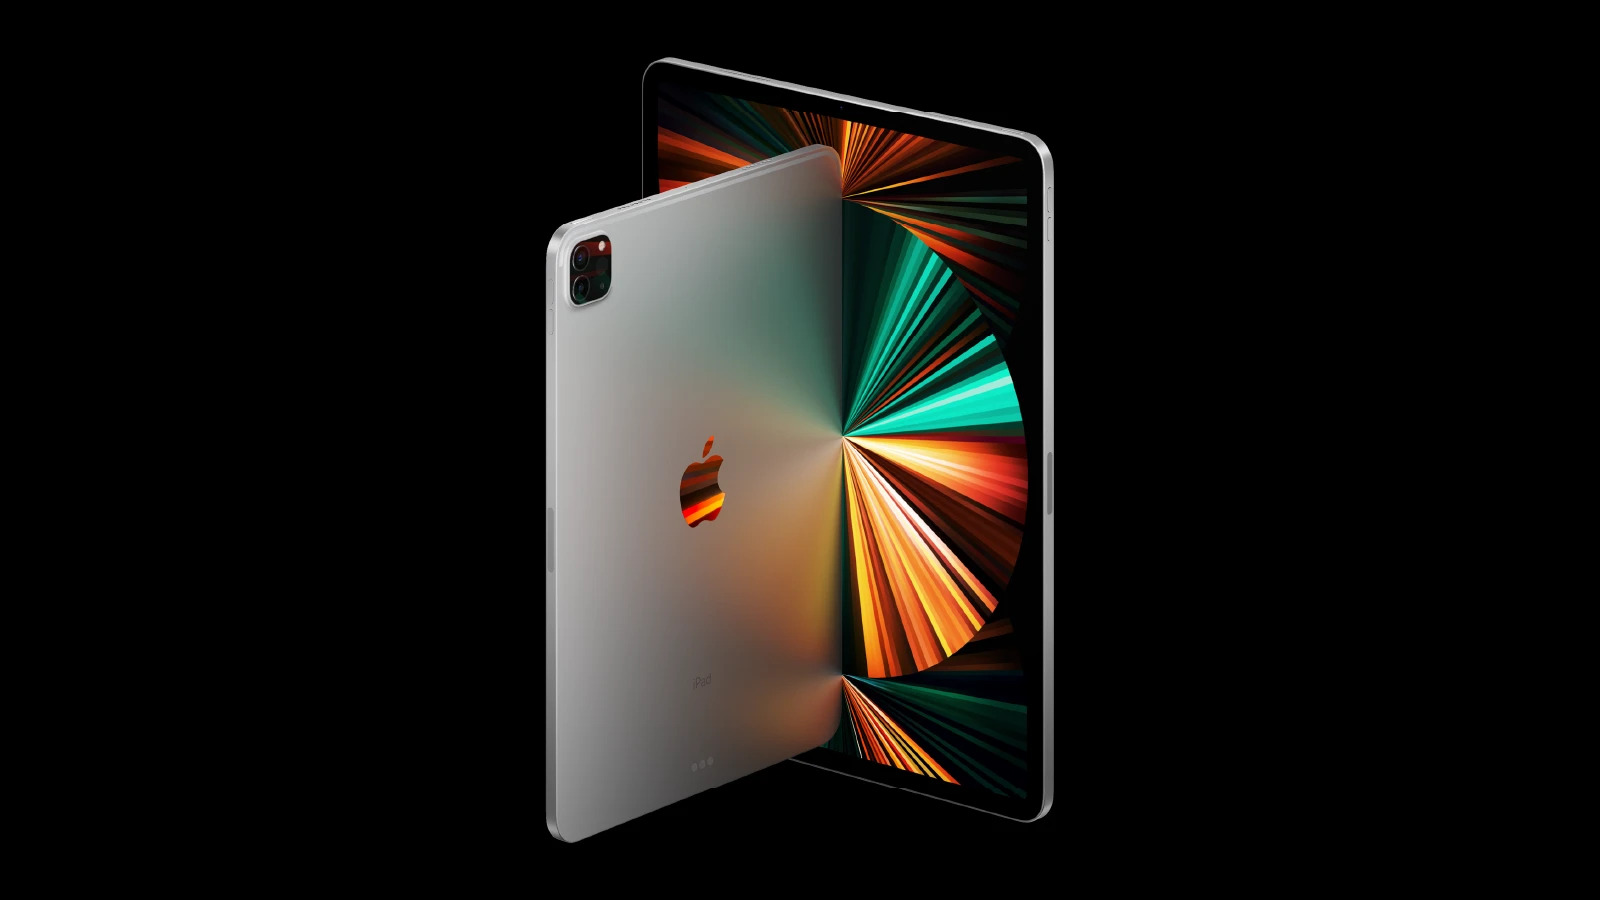 Apple iPad Pro 11 2021 specifications, price, and features ...